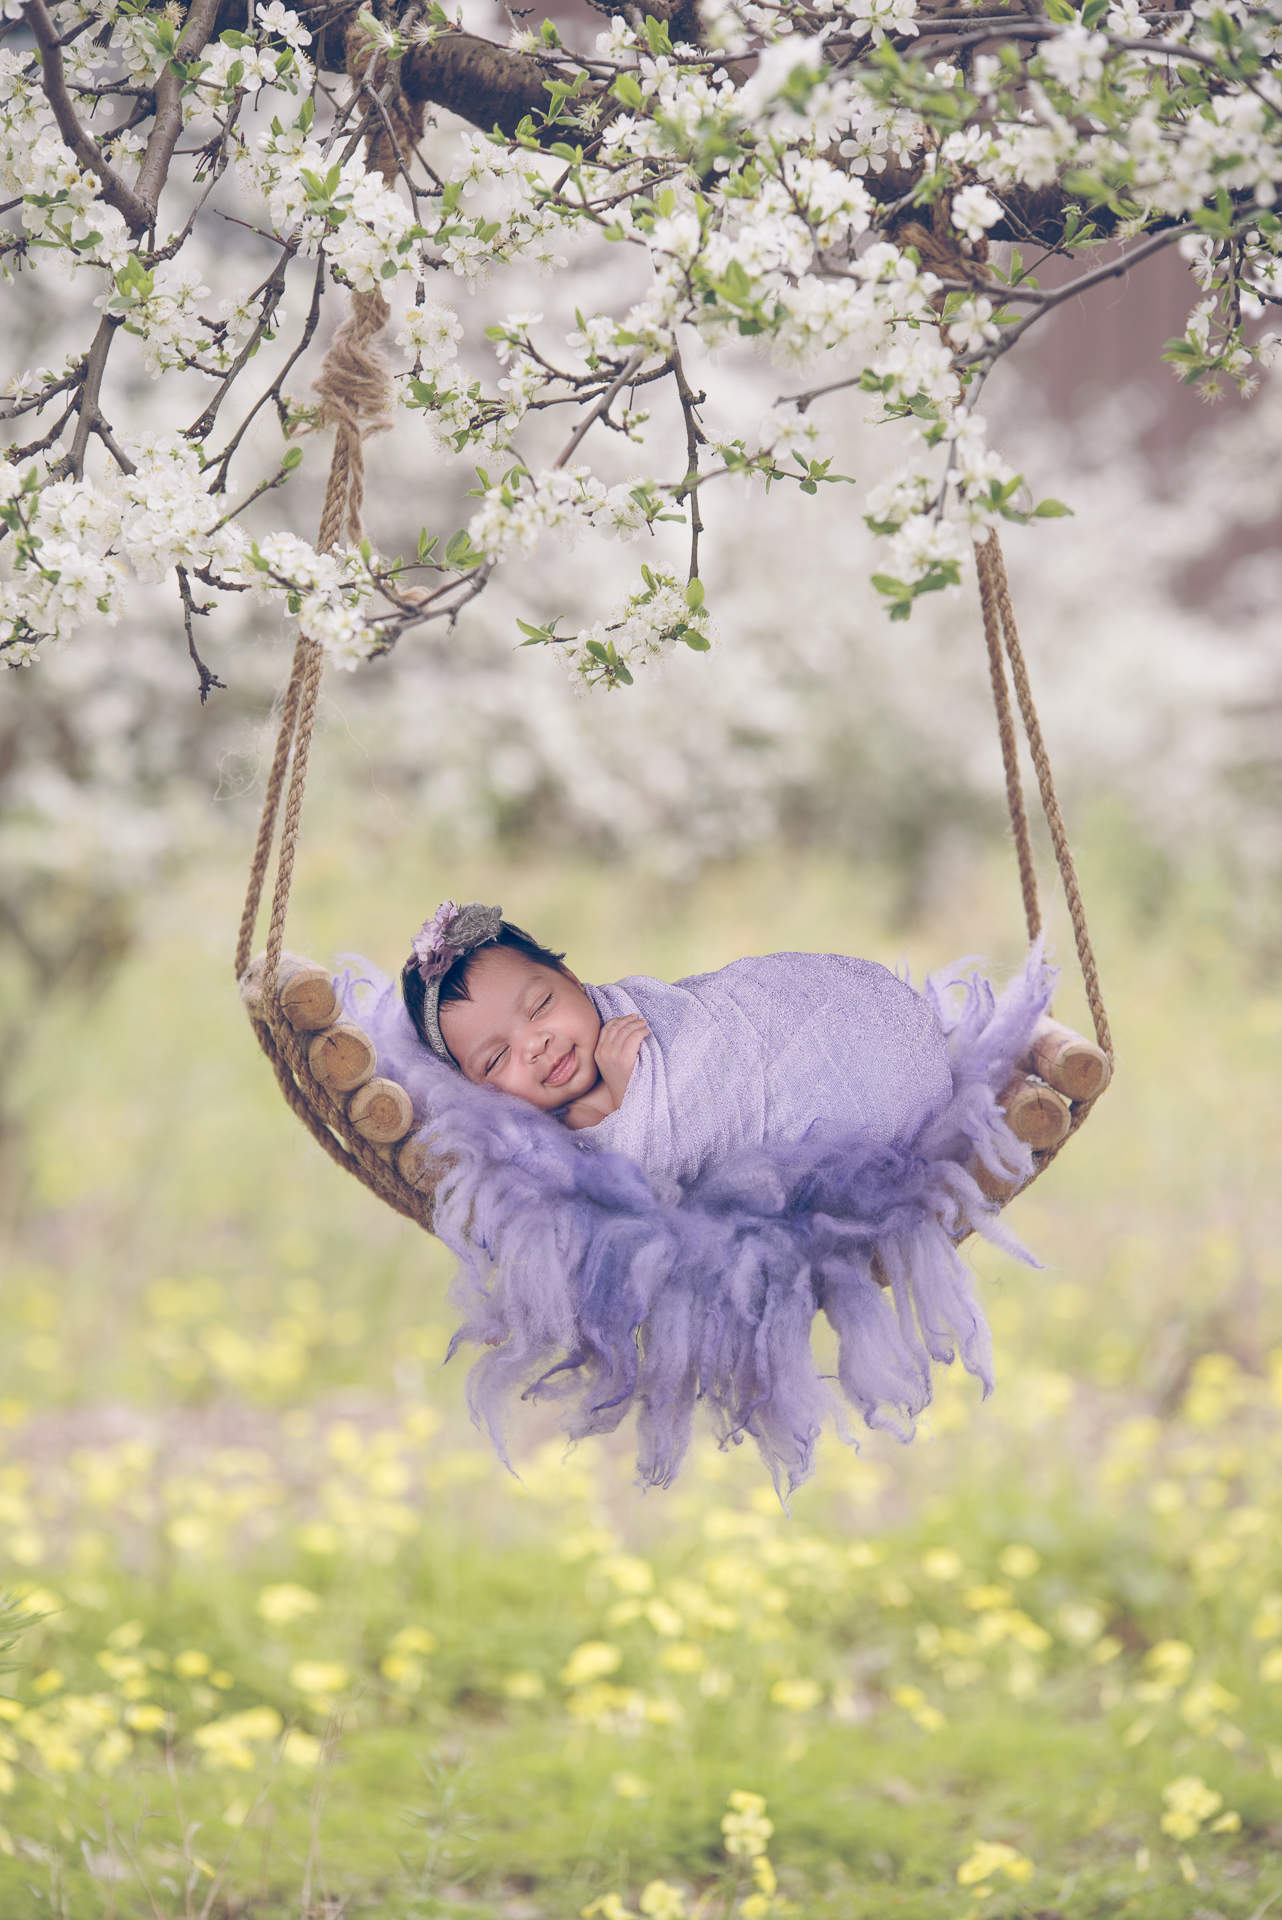 Newborn rests outdoors on hanging hammock prop while wearing purple wrap and purple headband.